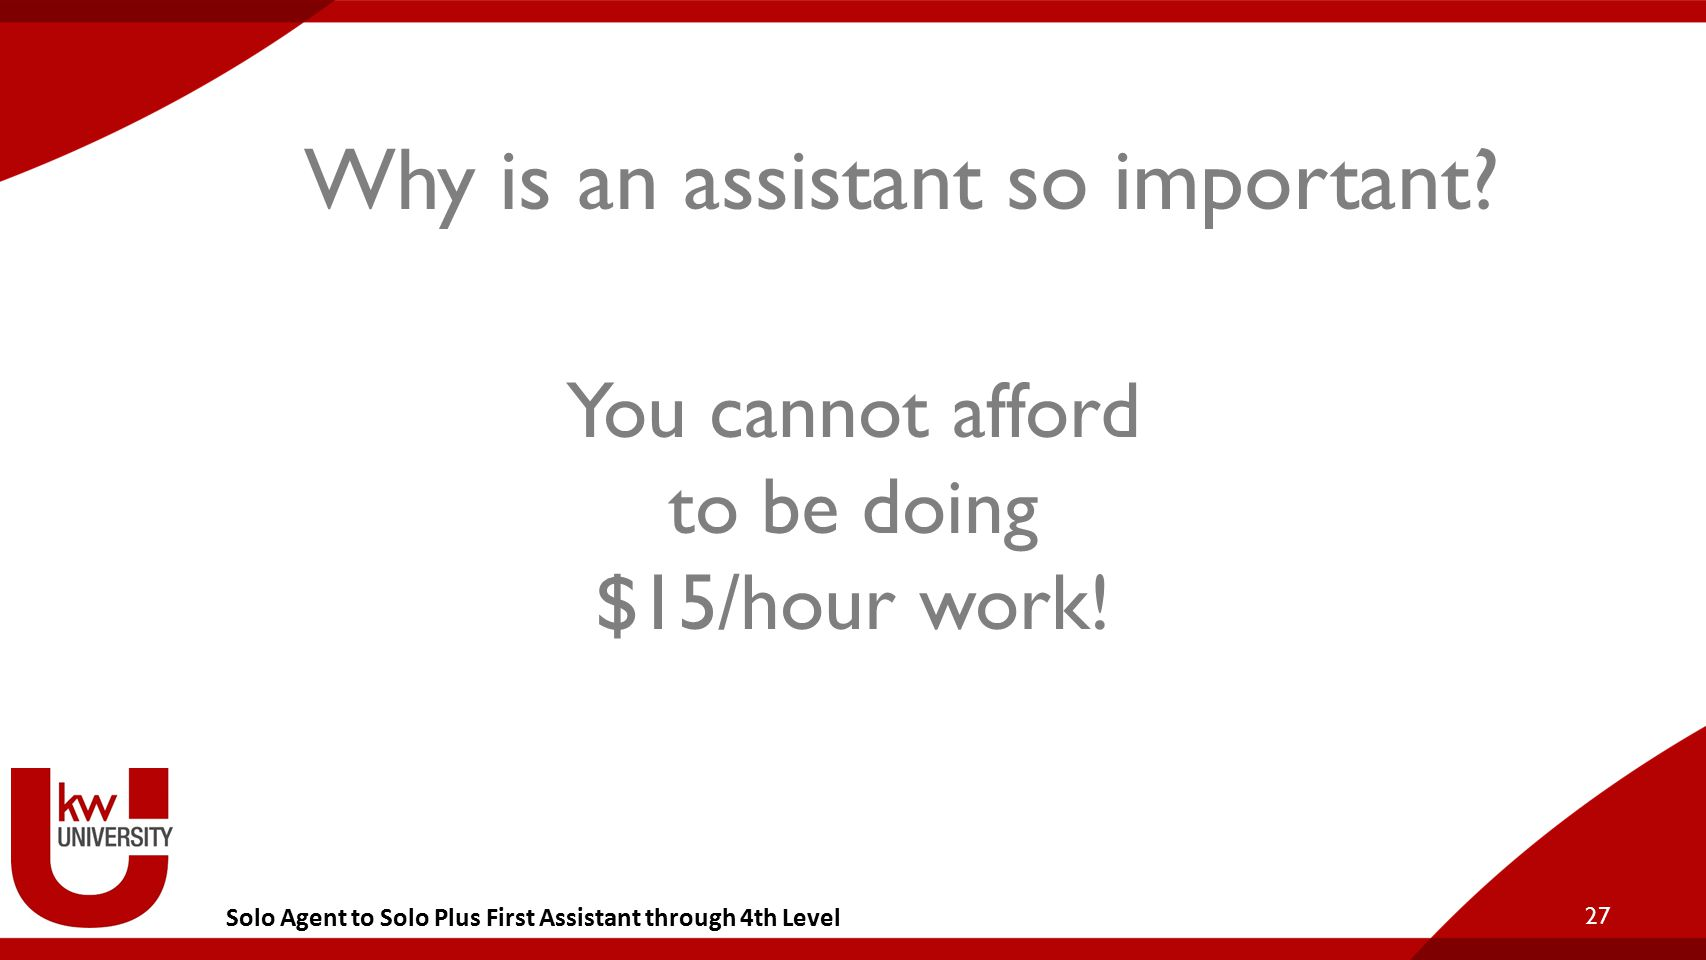 Solo Agent to Solo Plus First Assistant through 4th Level Q: Why is an assistant so important.